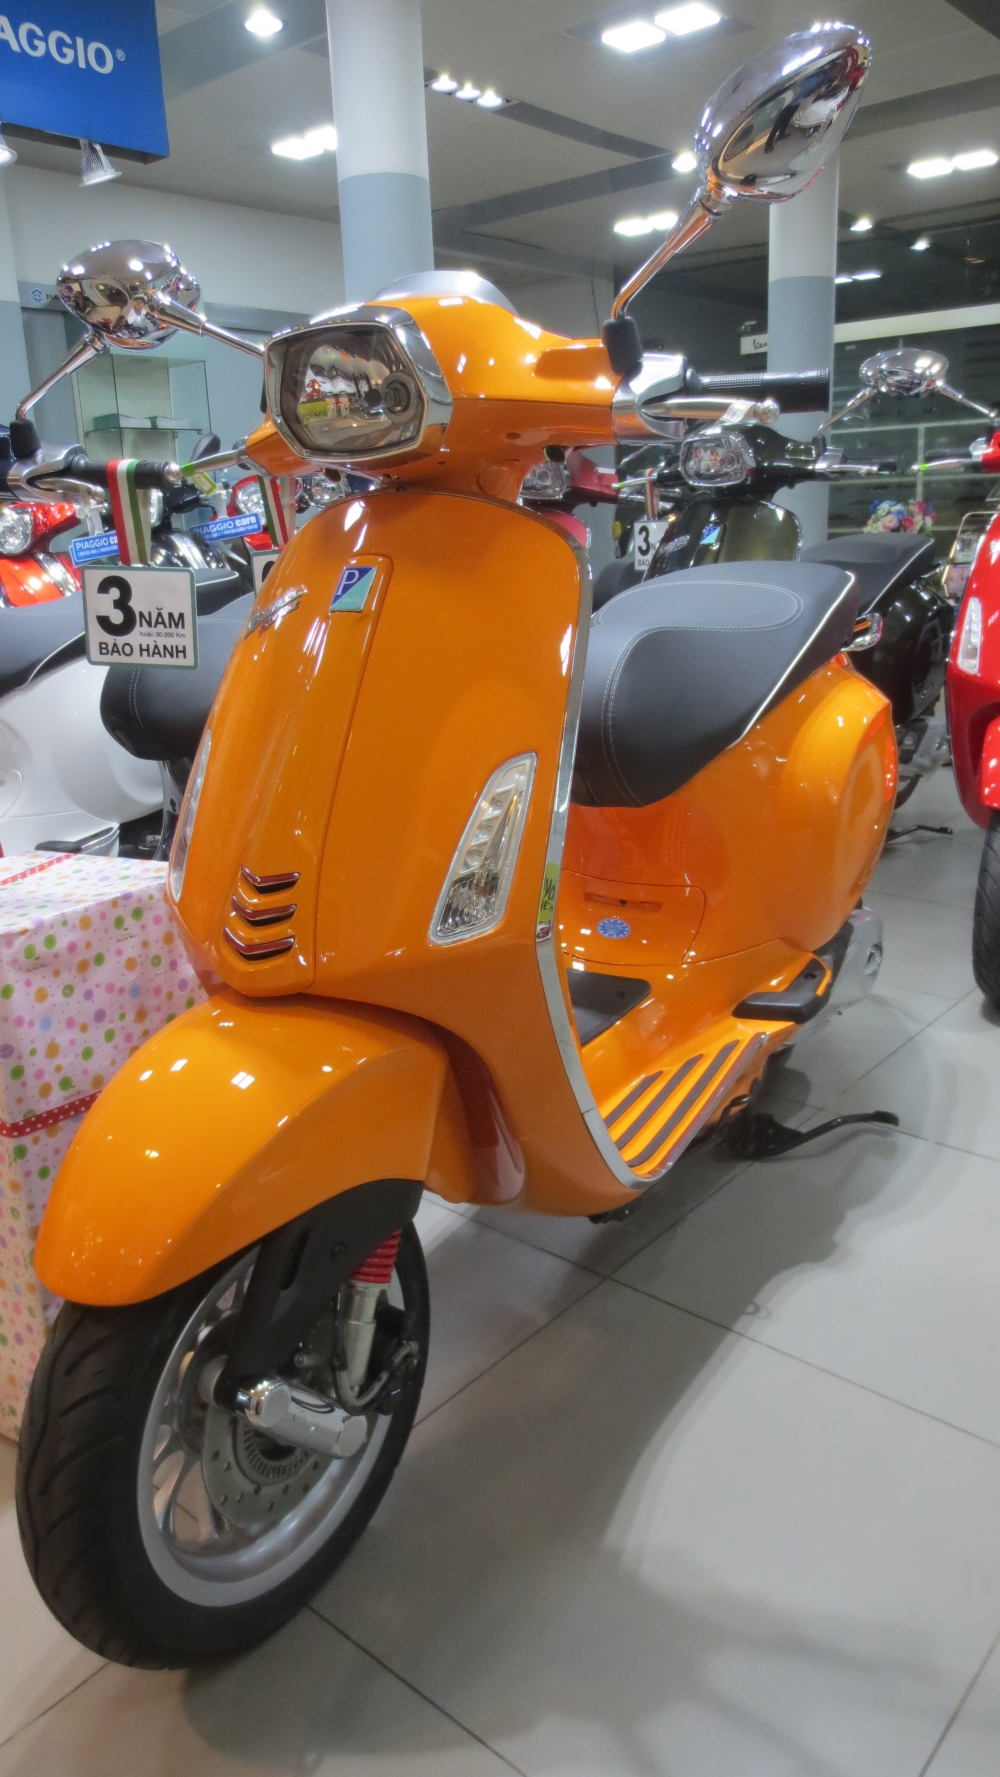 VESPA Sprint ABS chinh hang gia re nhat SG - 7